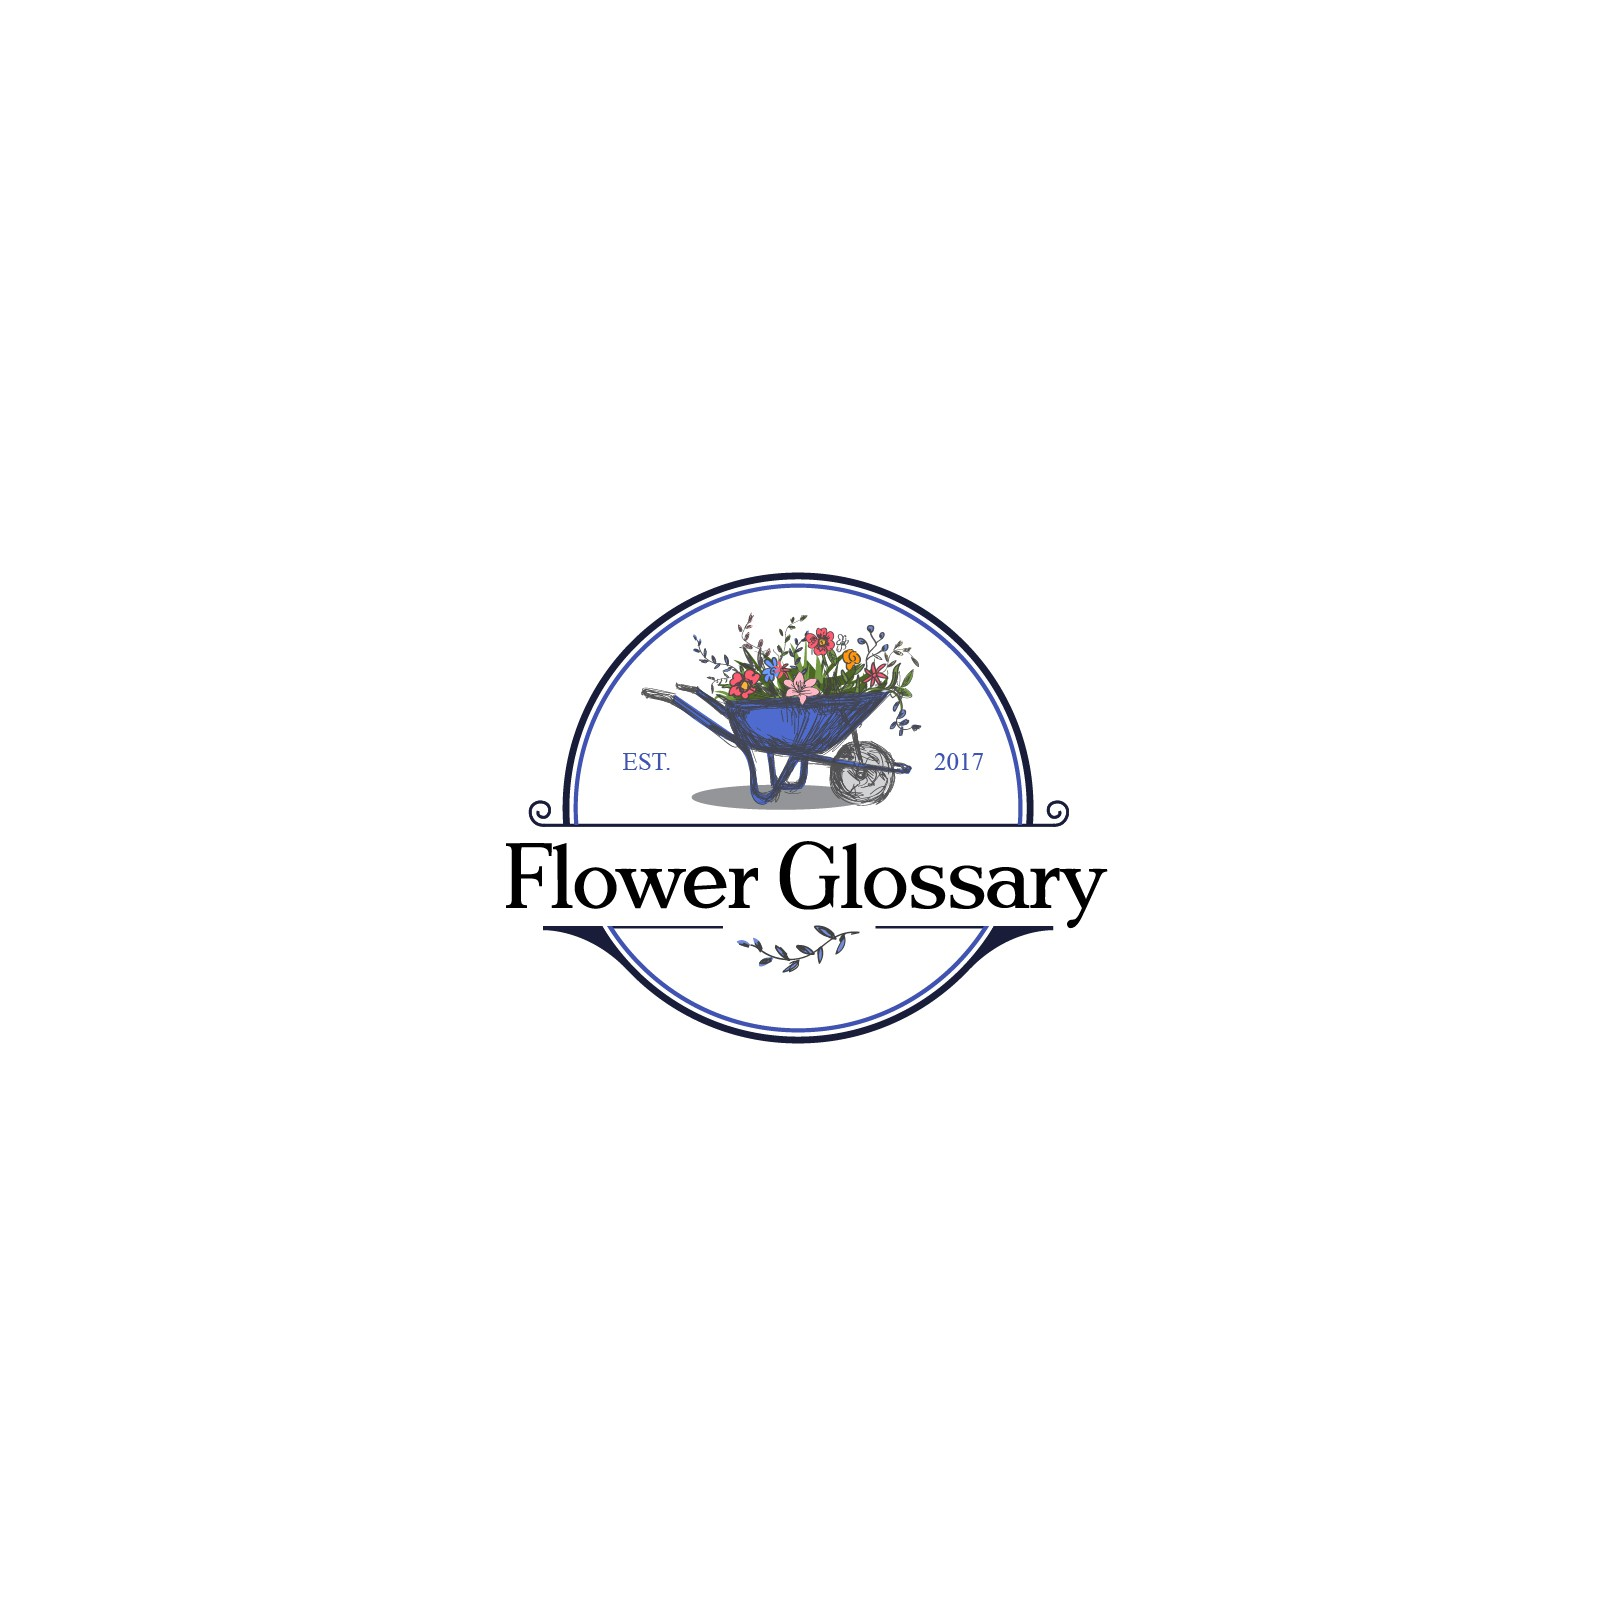 Popular Flower Site Needs its First Professional Logo